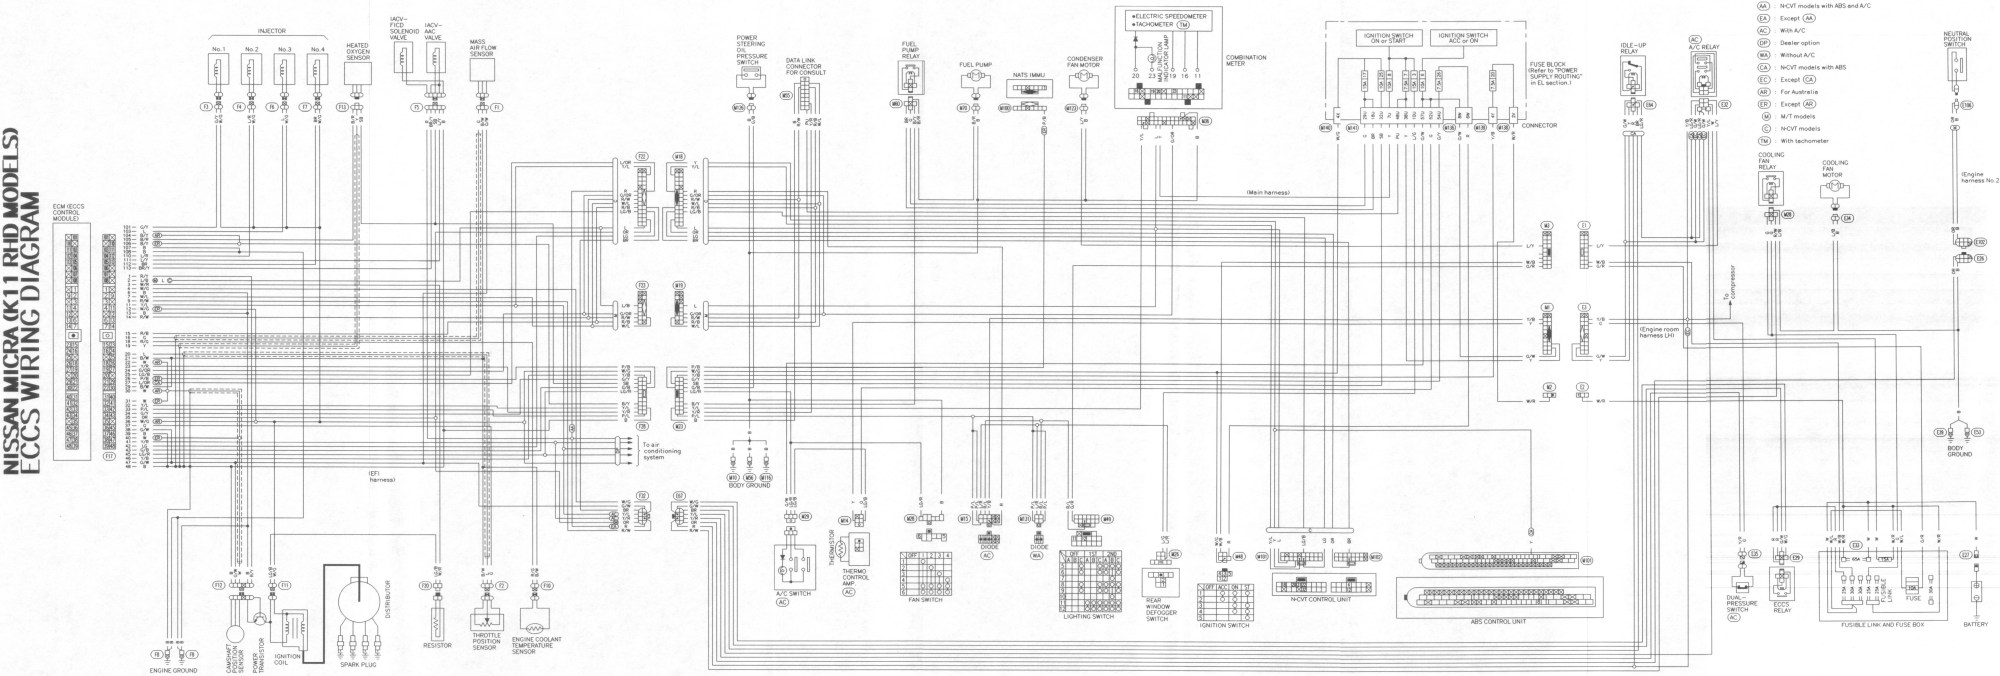 hight resolution of nissan micra k13 wiring diagram wiring diagram for professional u2022 rh bestbreweries co nissan micra k14 nissan pathfinder